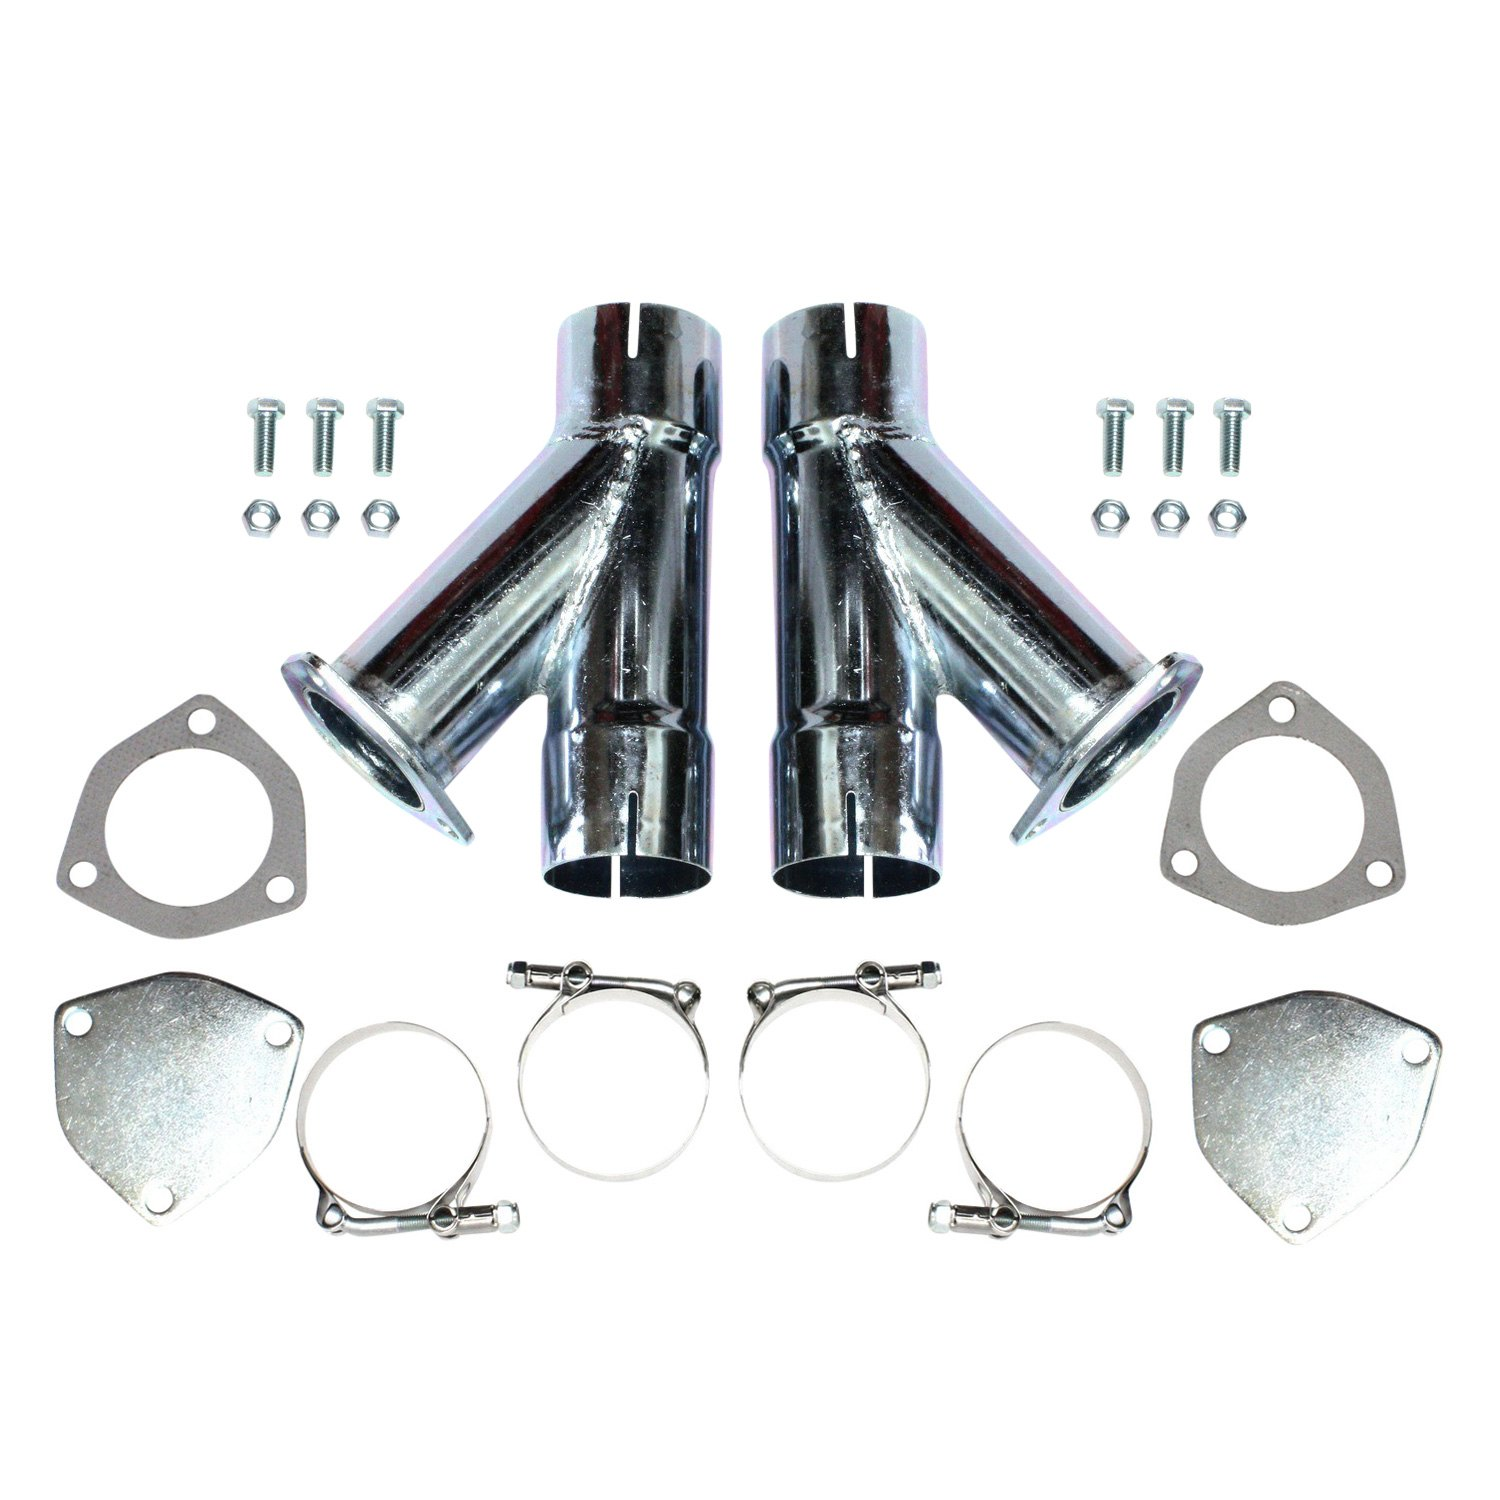 Patriot H1135 3-1//2-Inch Exhaust Cut-Out Hookup Kit